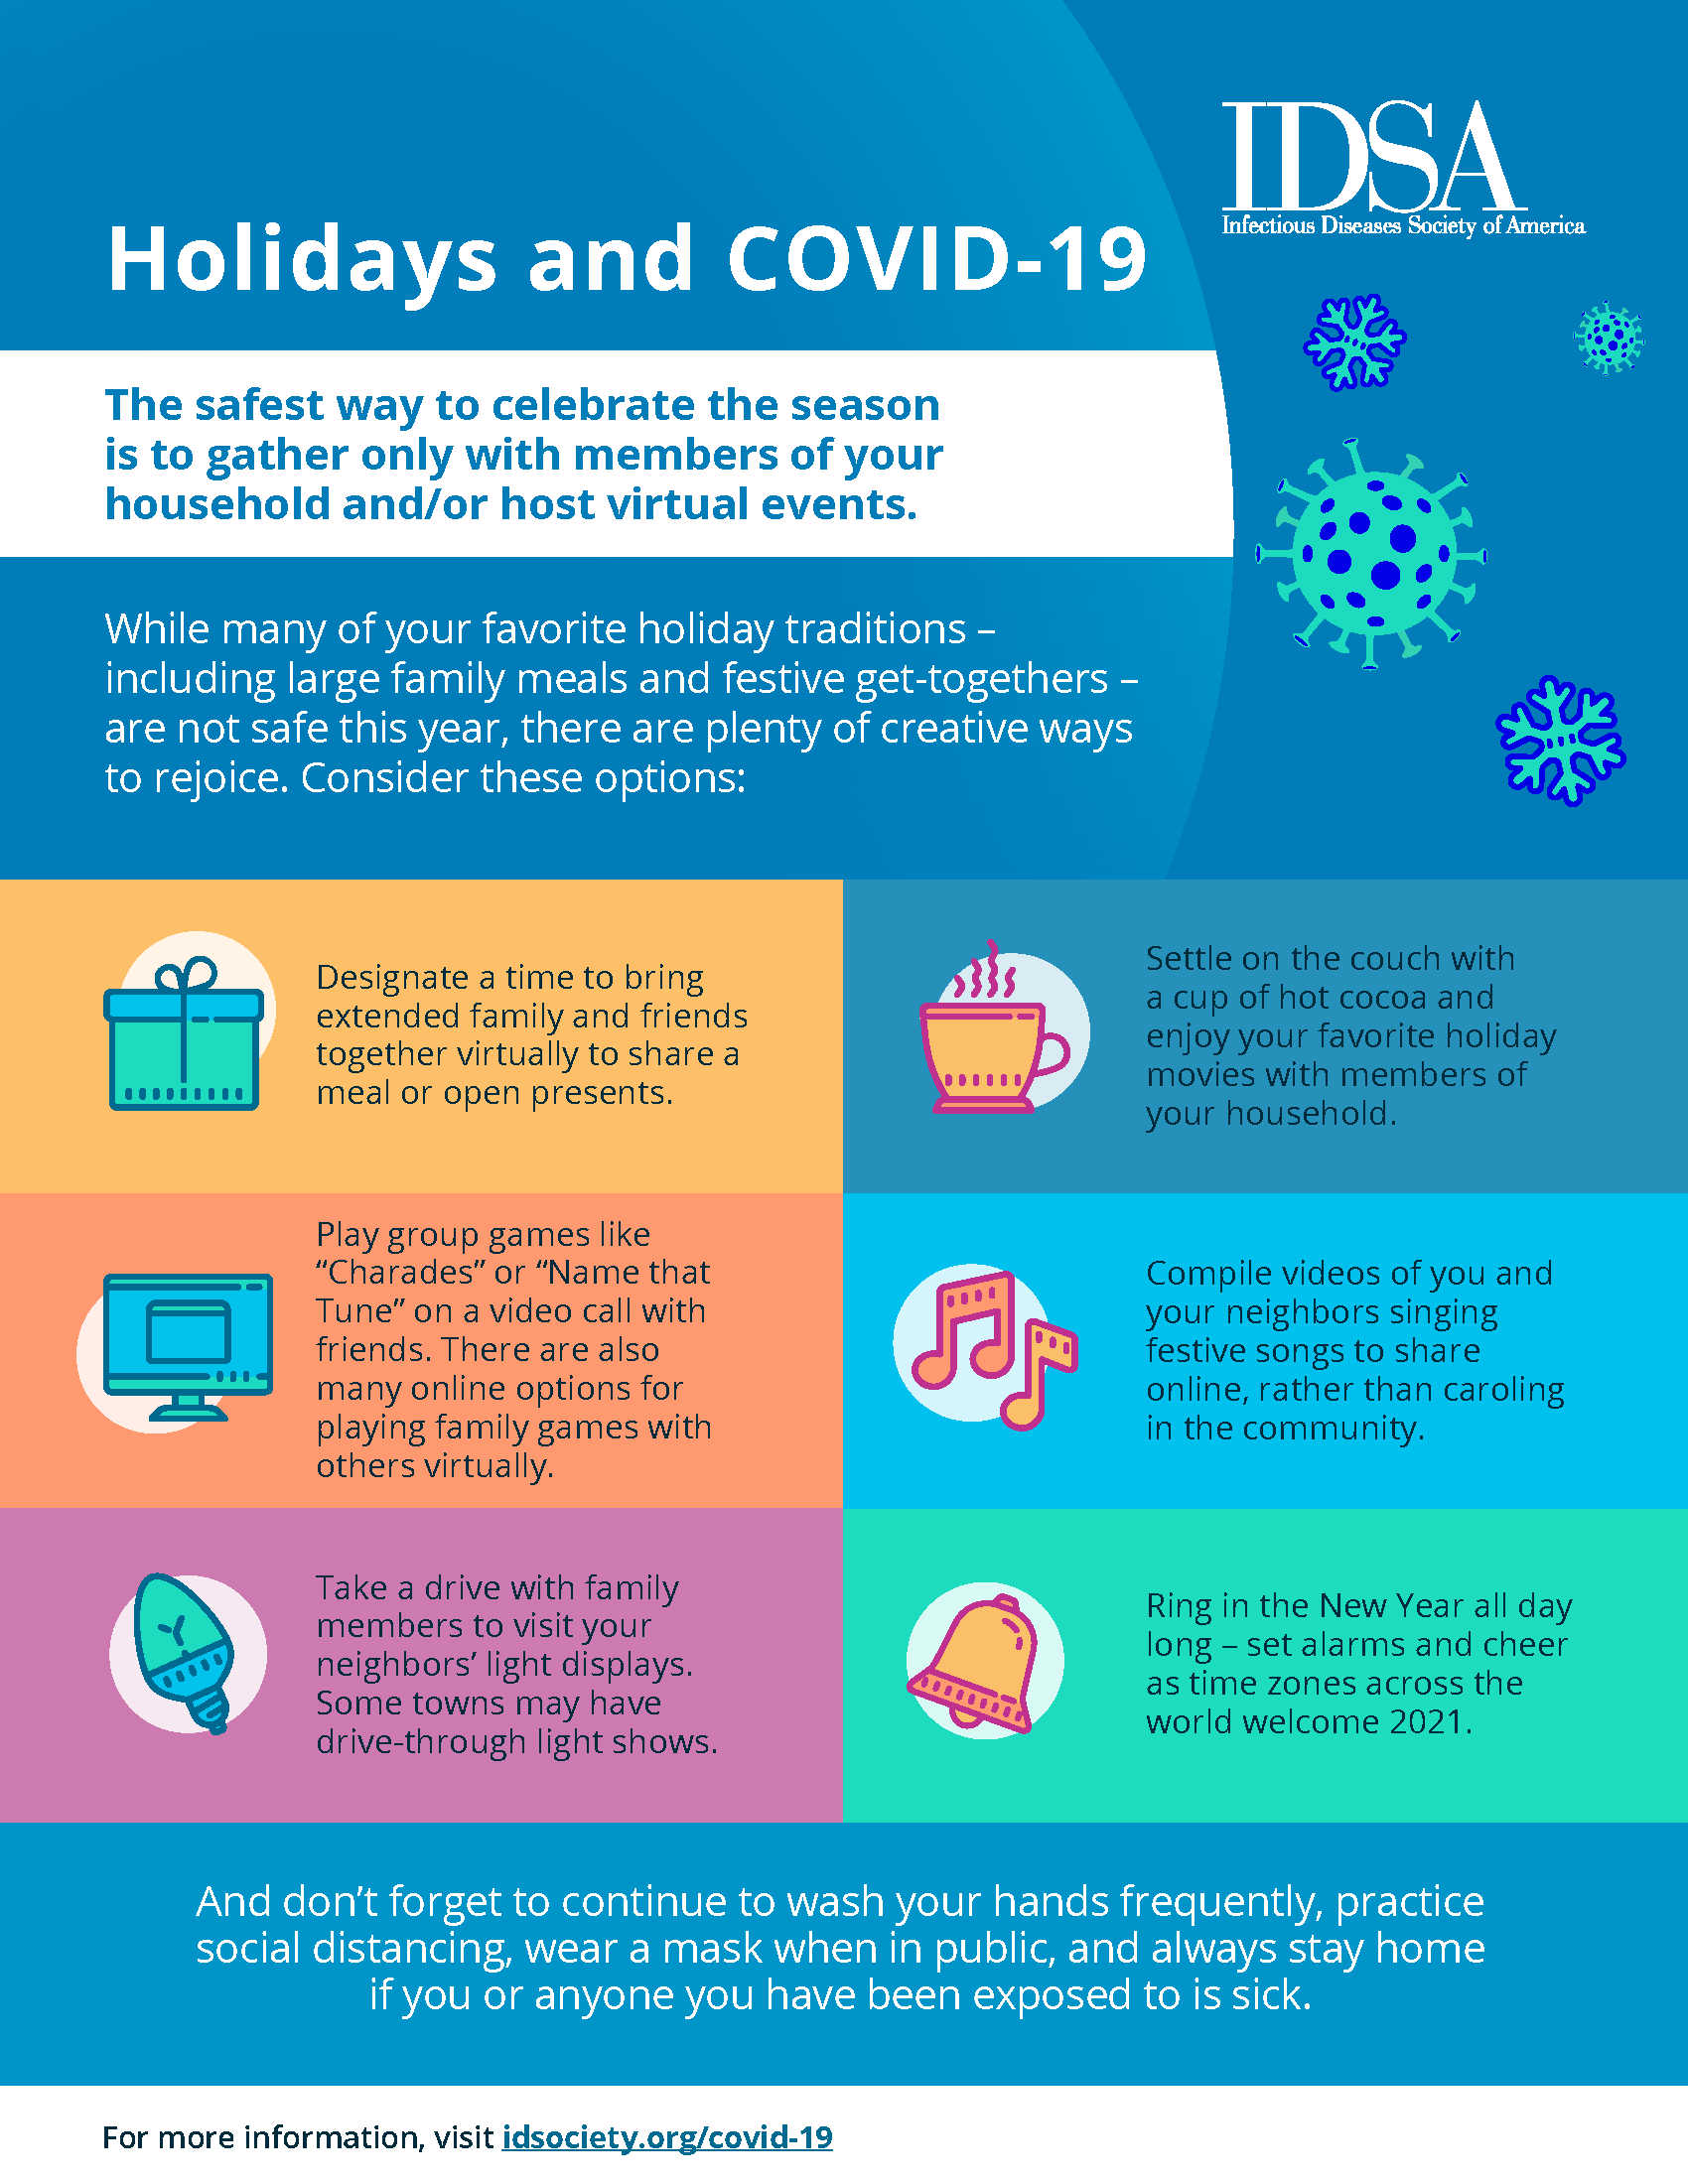 IDSA Holiday Infographic.png